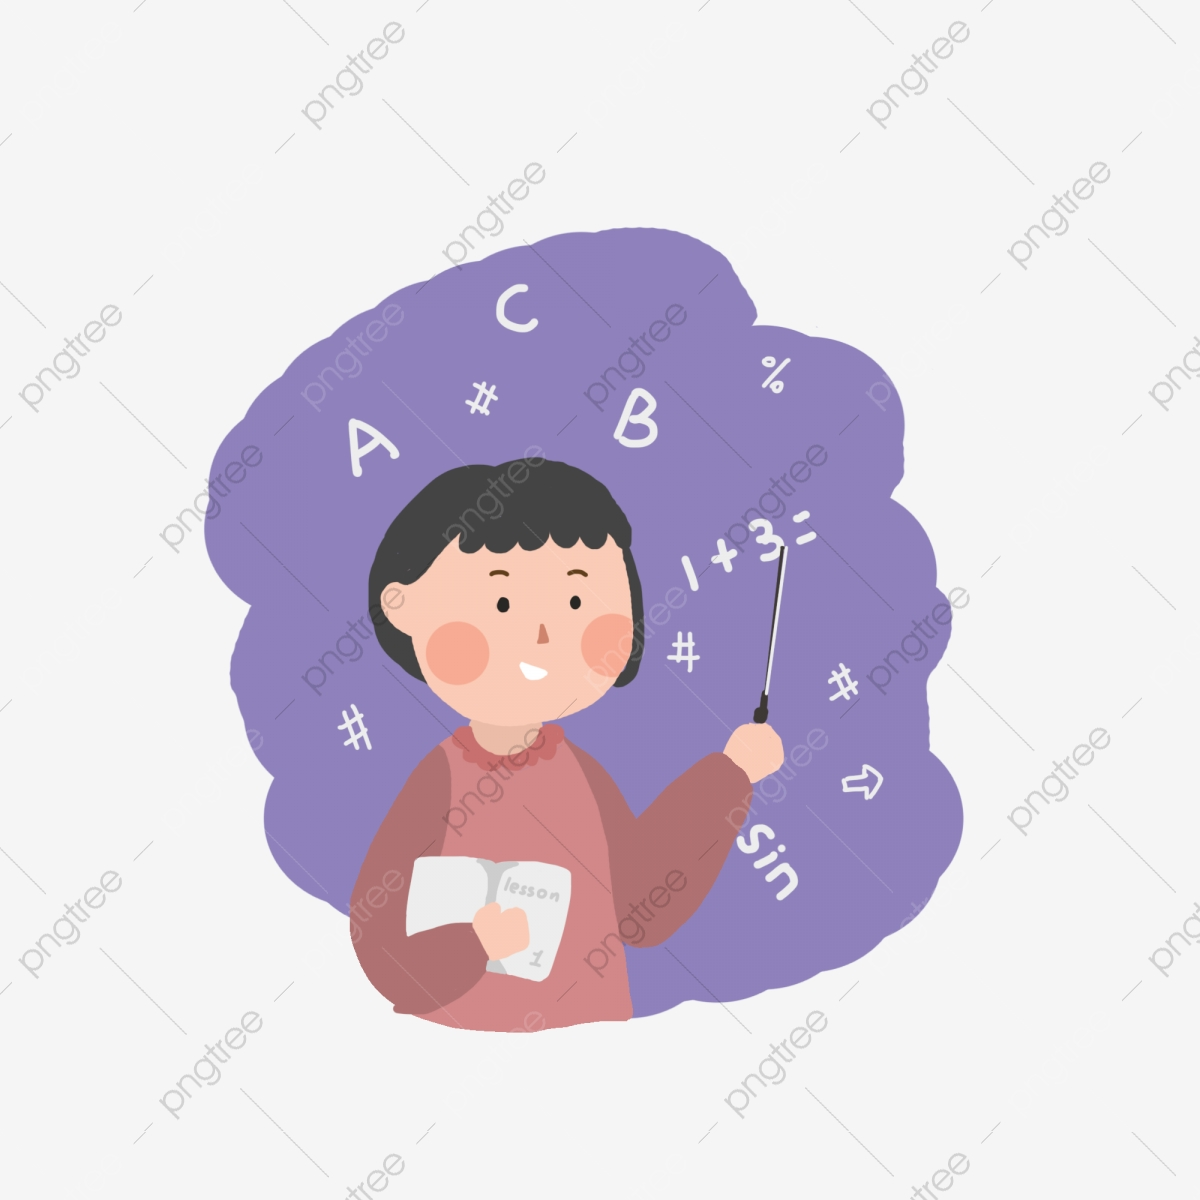 Working clipart class work. Teacher in knowledge person